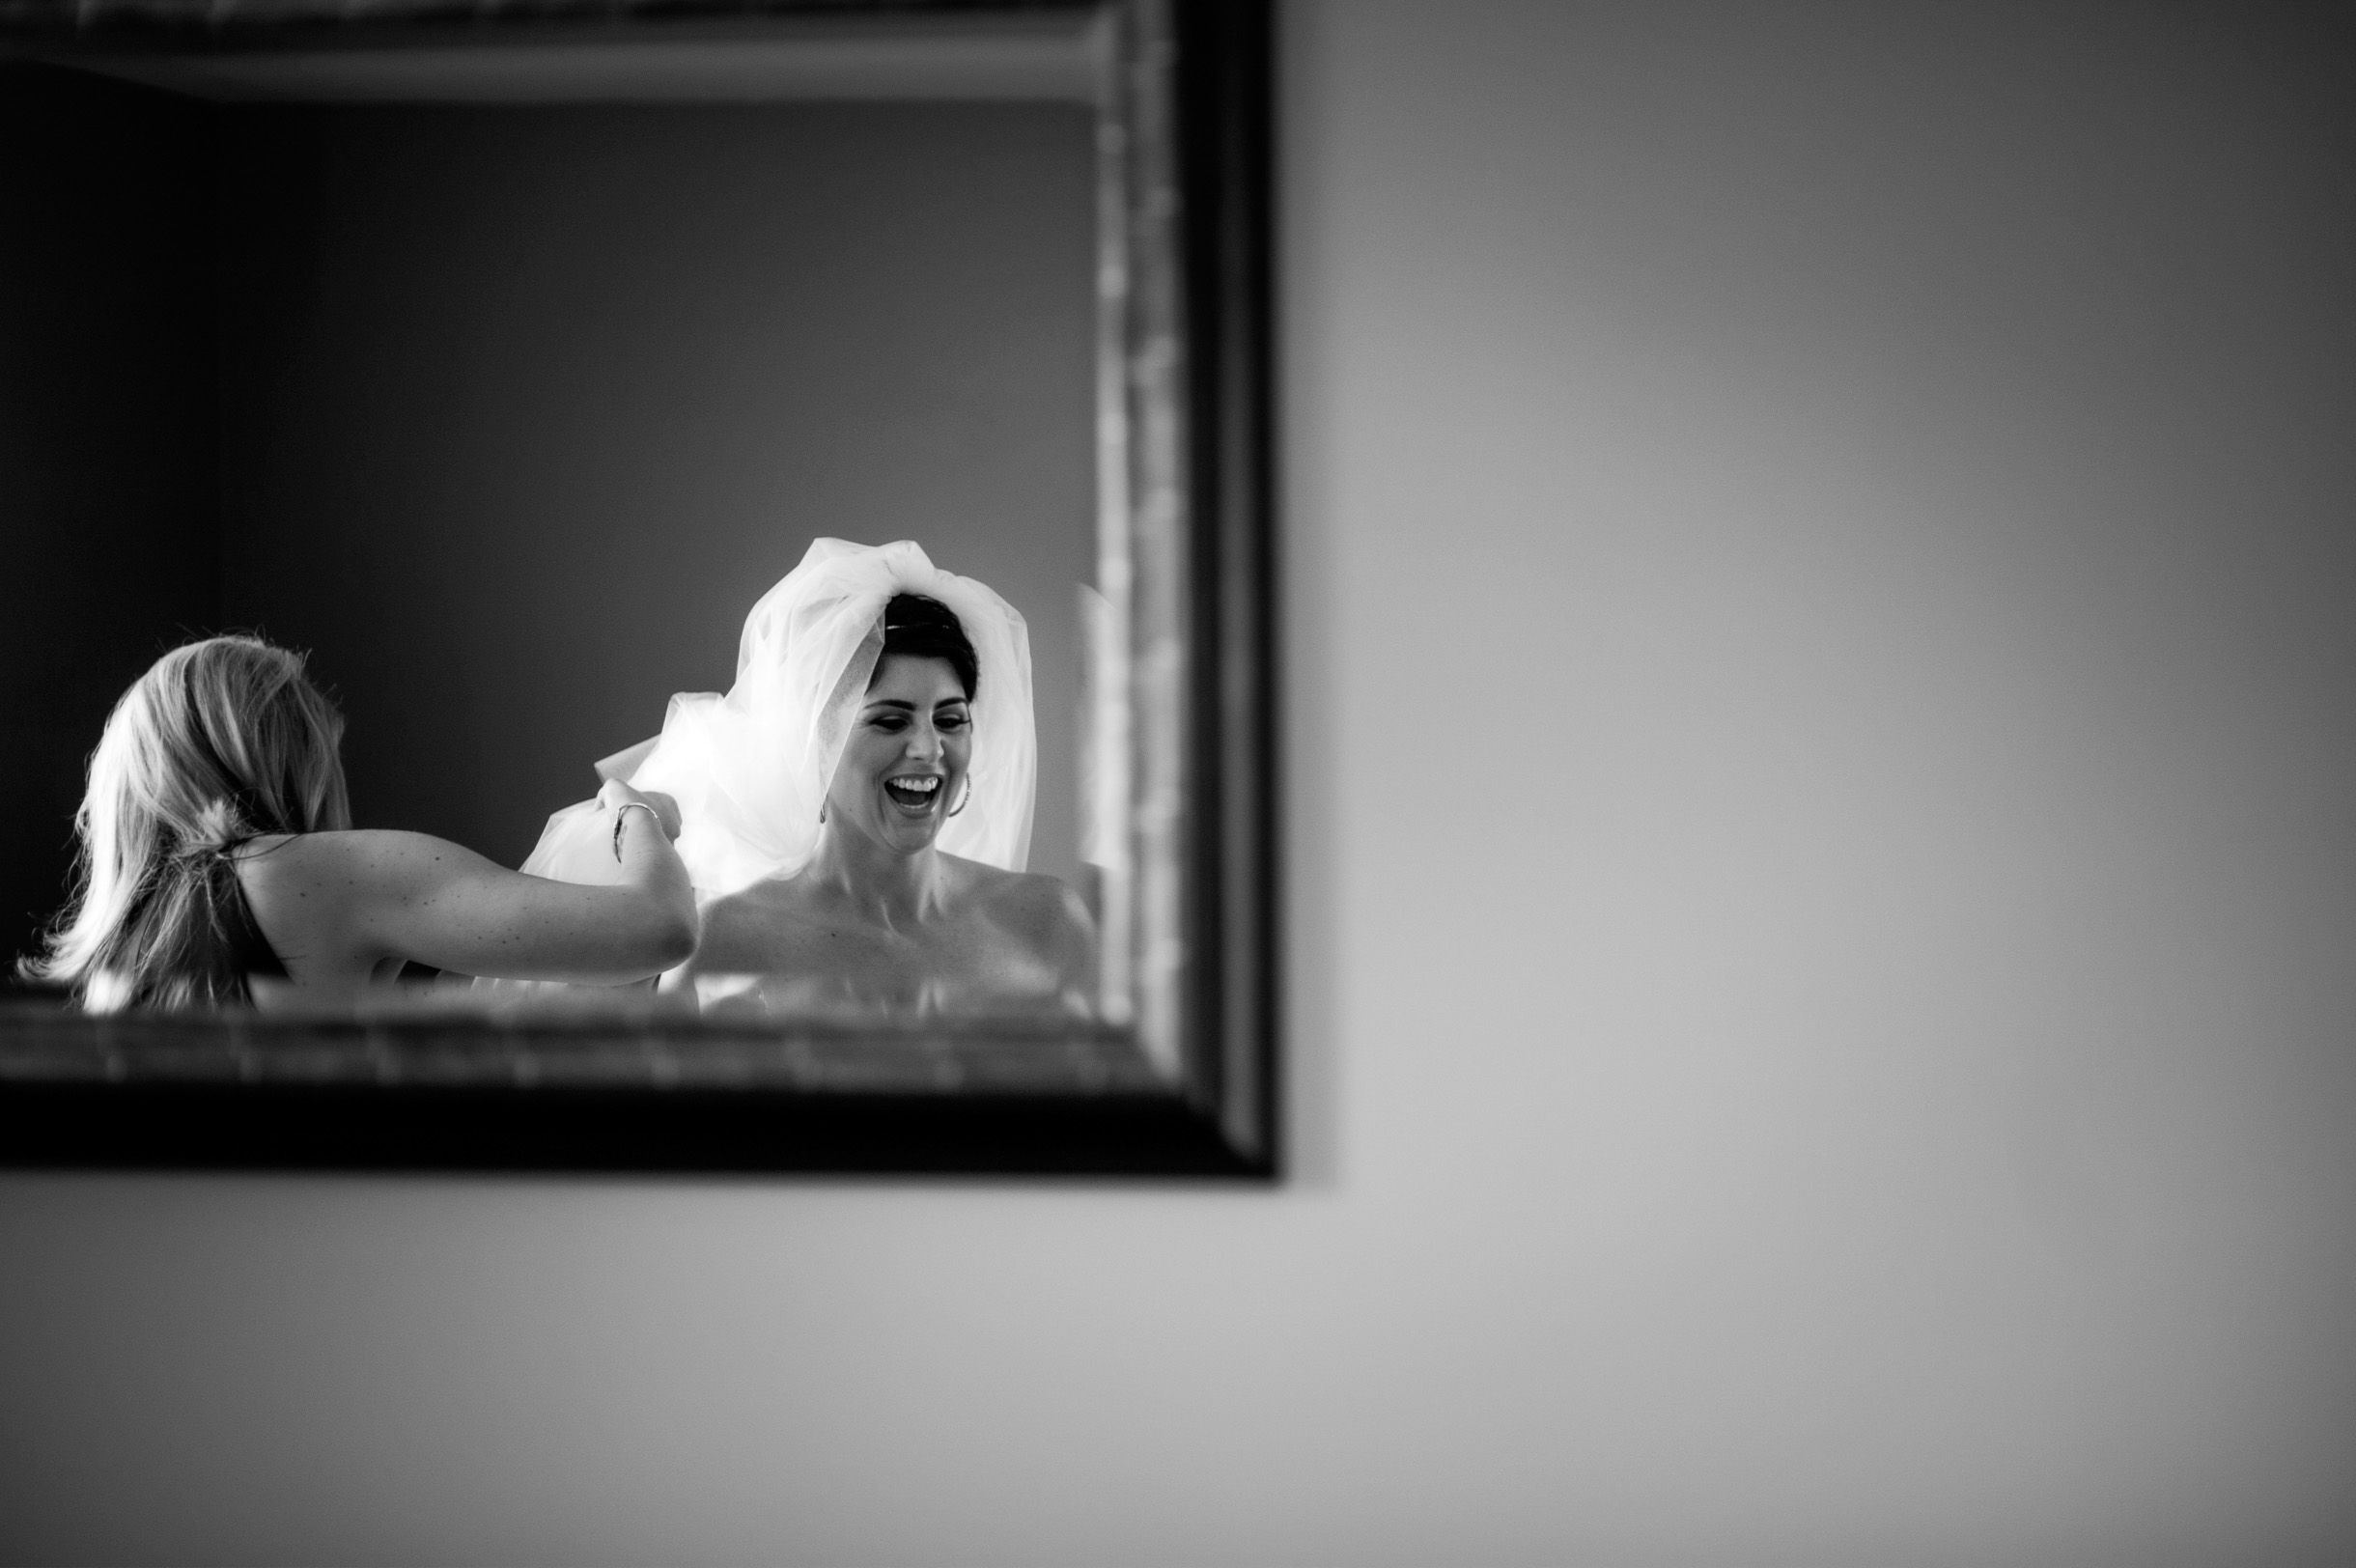 Bride getting her veil put on by her bridesmaid and laughing in the mirror